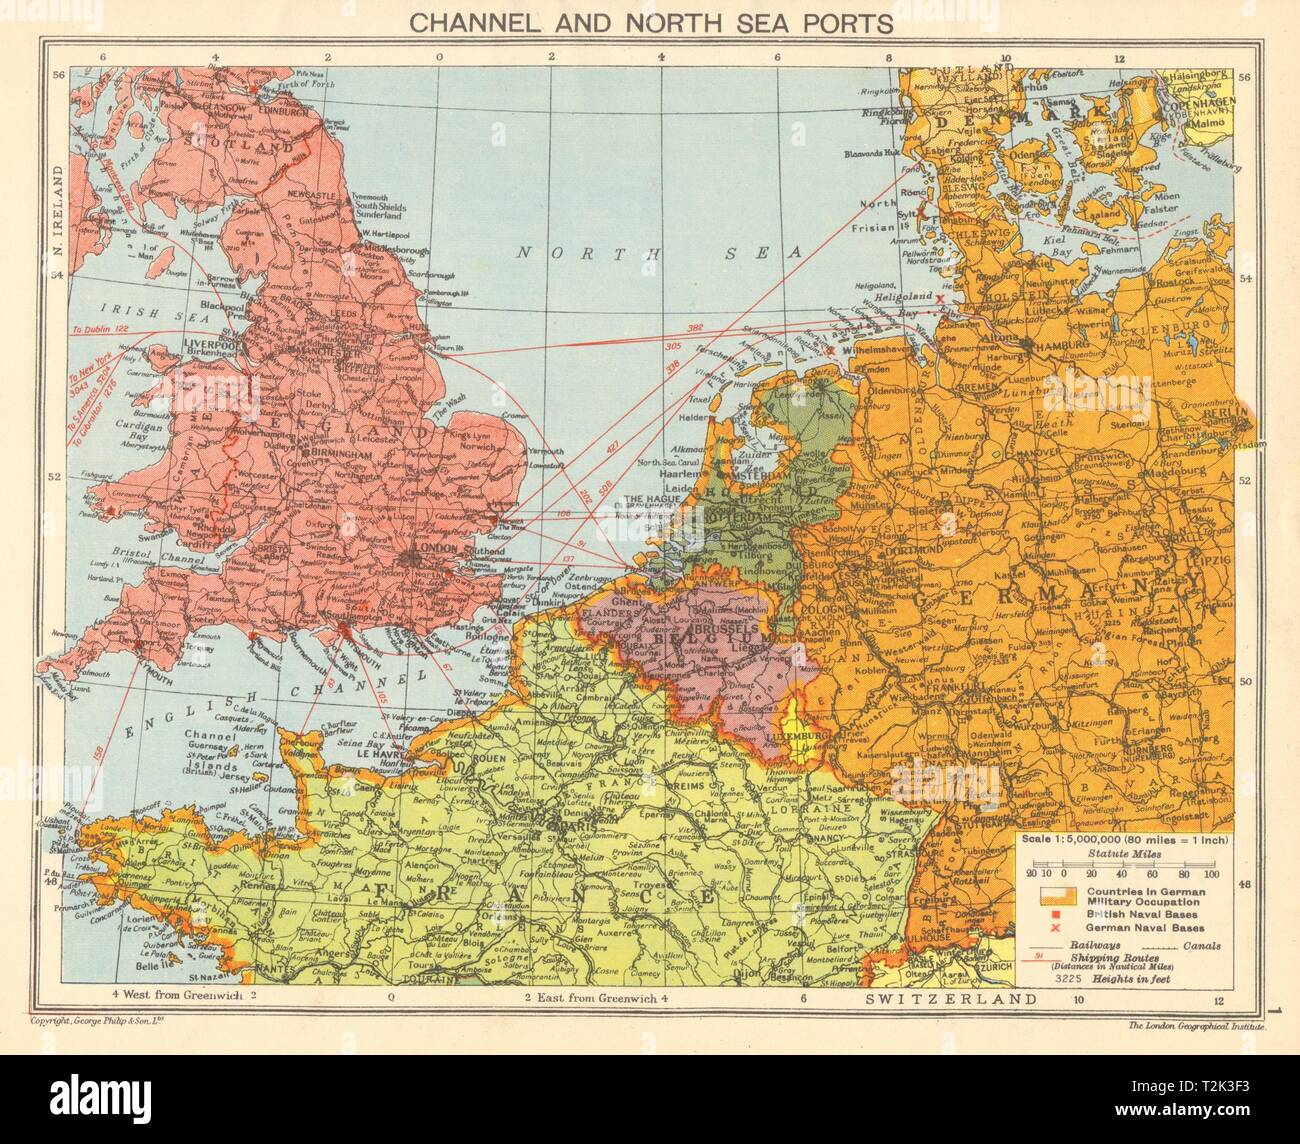 Picture of: World War 2 English Channel North Sea Ports German Occupied Europe 1942 Map Stock Photo Alamy